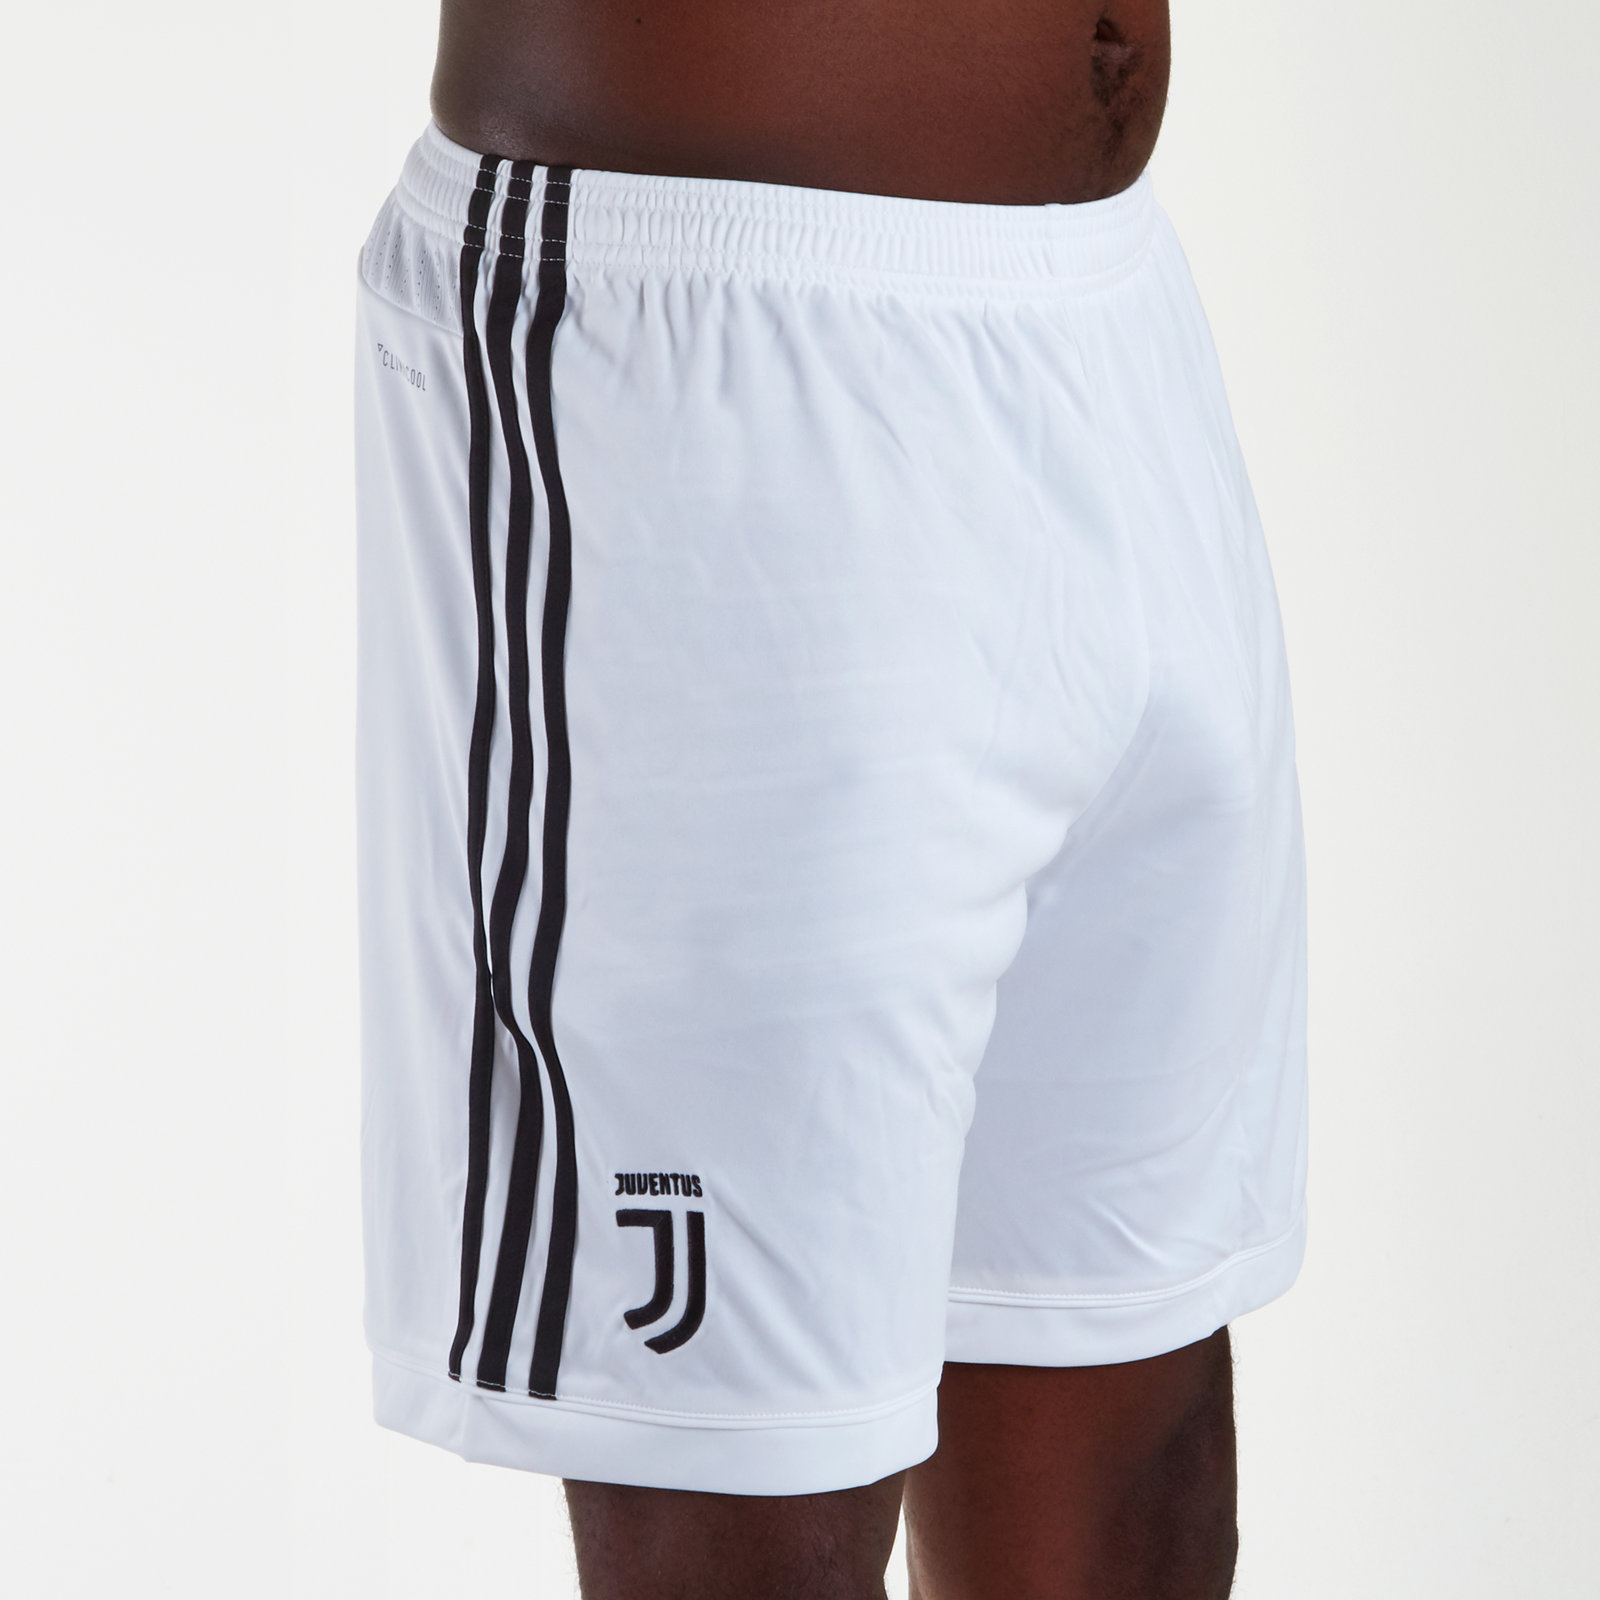 Image of Juventus 17/18 Home Football Shorts